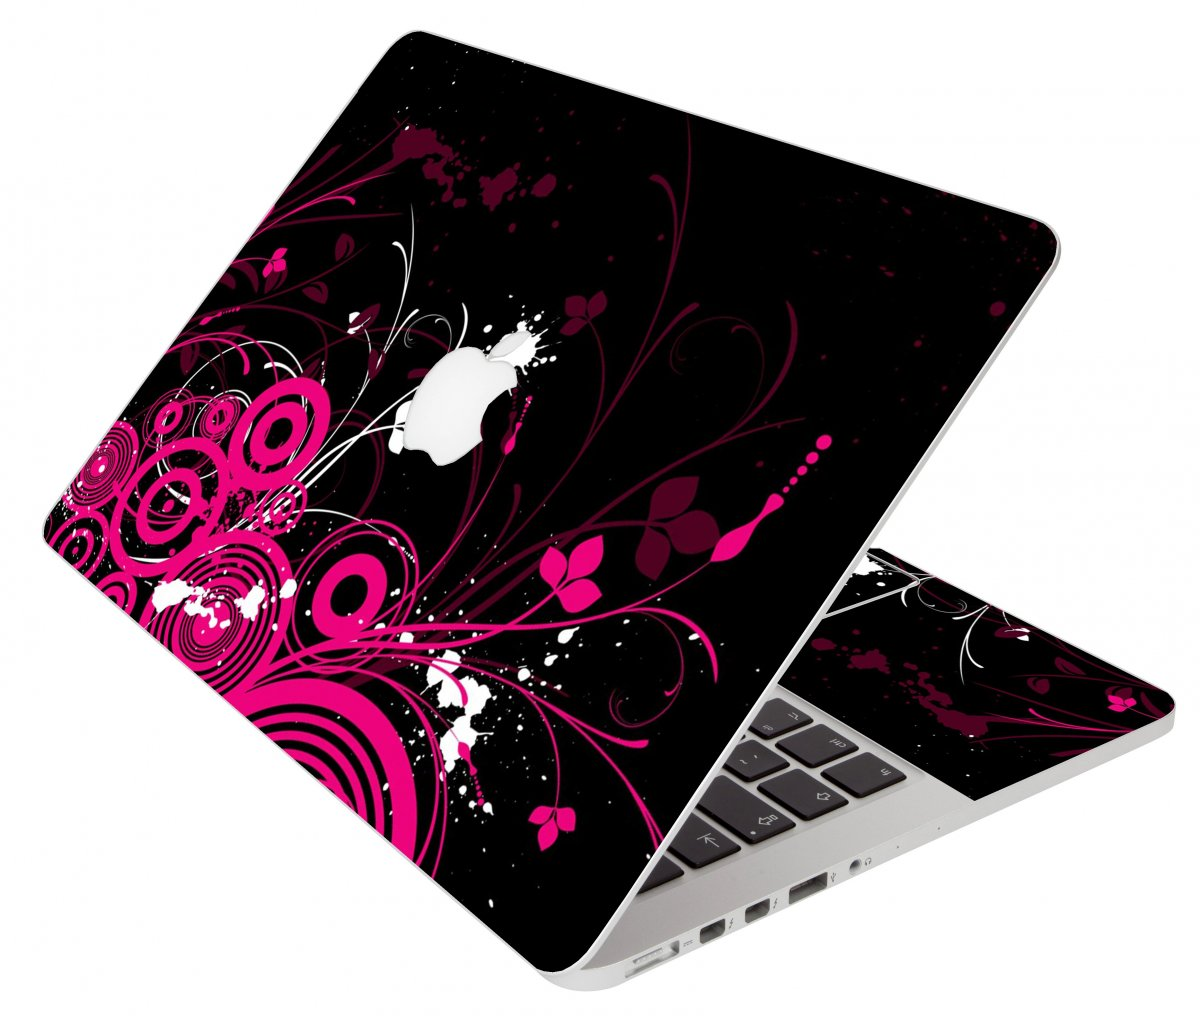 Black Pink Butterfly Apple Macbook Original 13 A1181 Laptop Skin